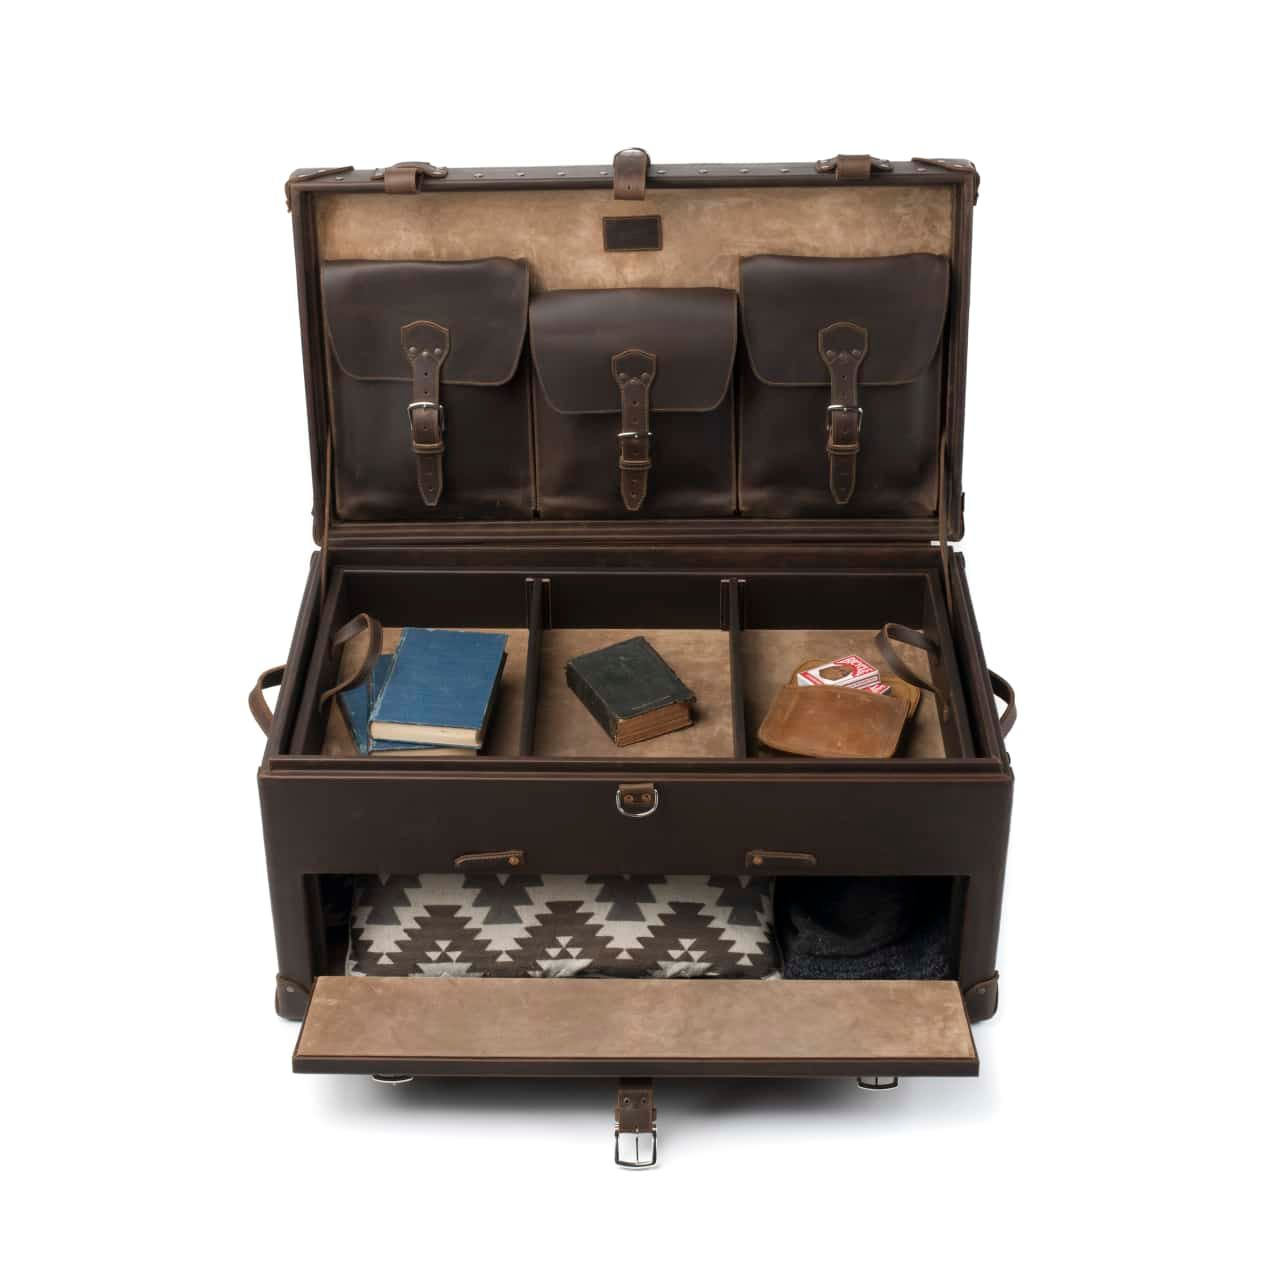 Leather Trunk in color Dark Coffee Brown shown from the Front Top with the Upper and Bottom Lids Open with Books Cards Pillows and Blankets